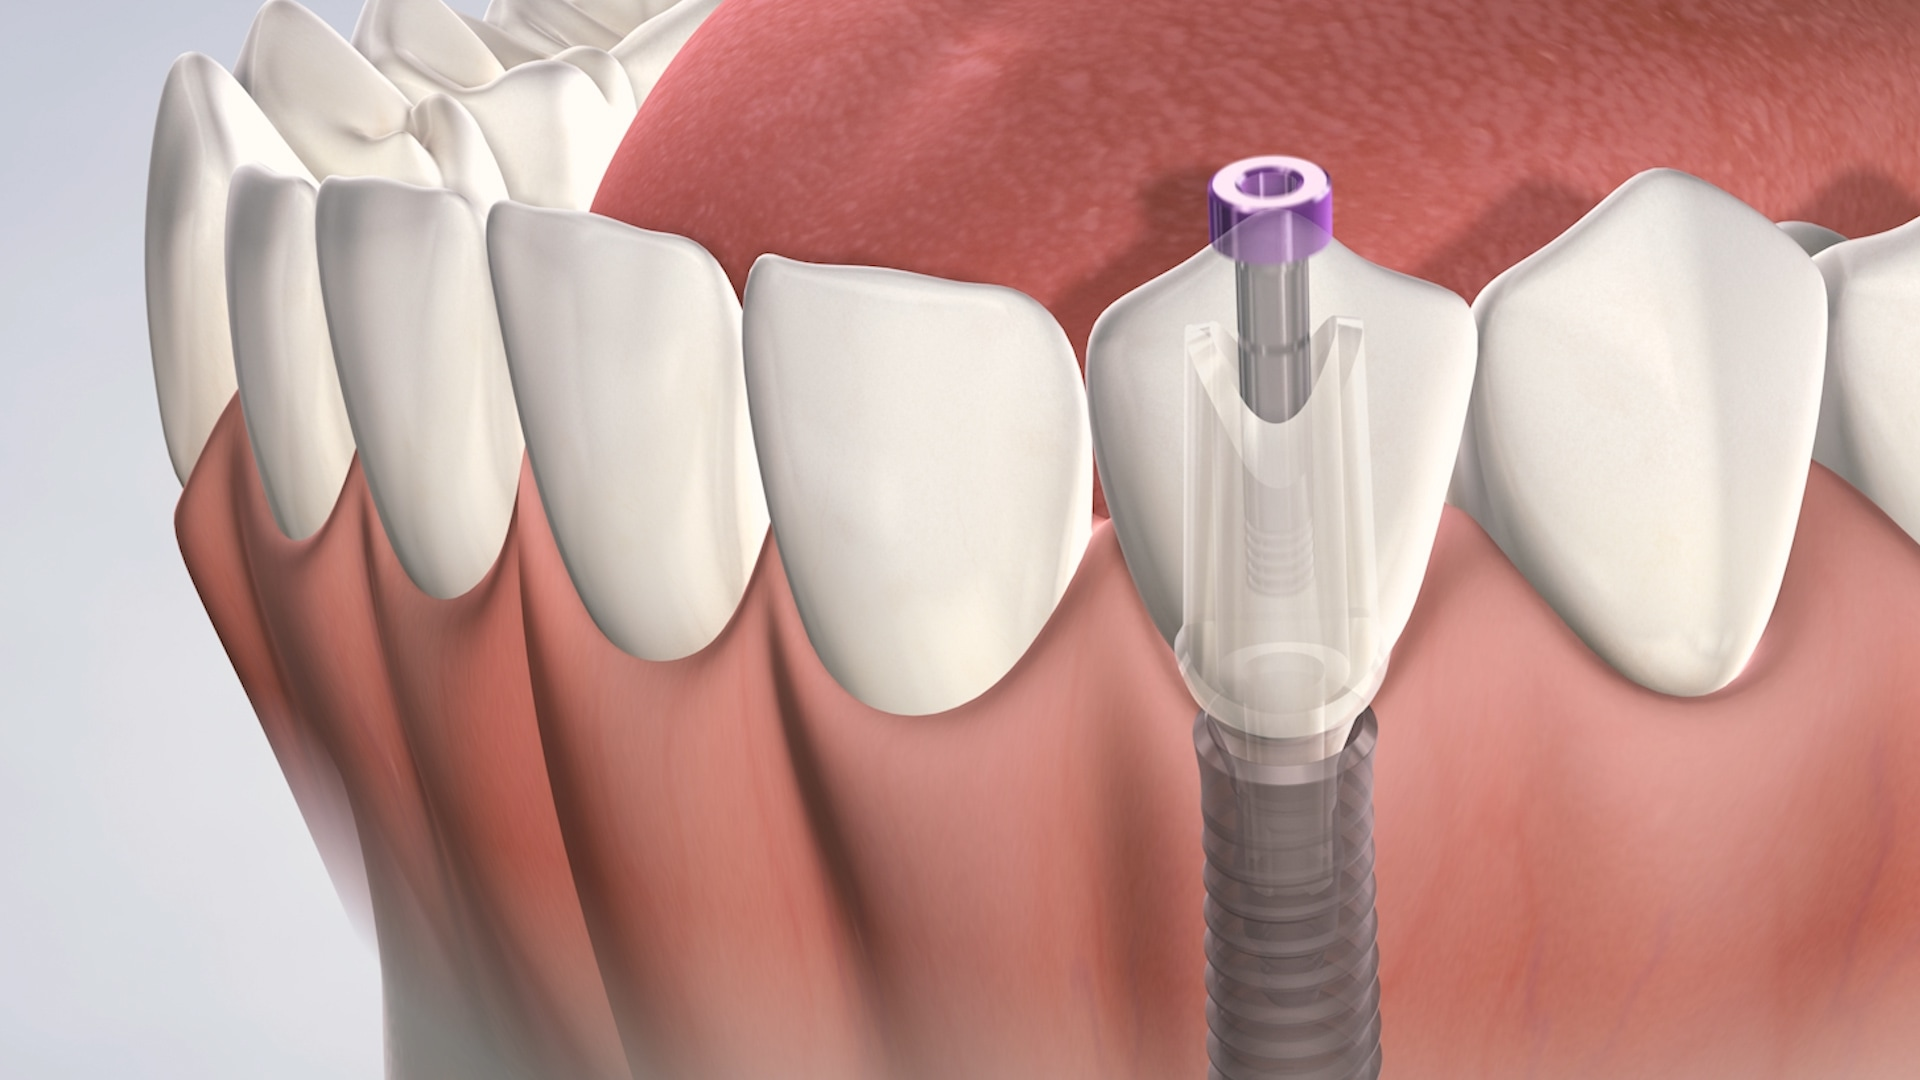 This image shows how a single dental implant is placed